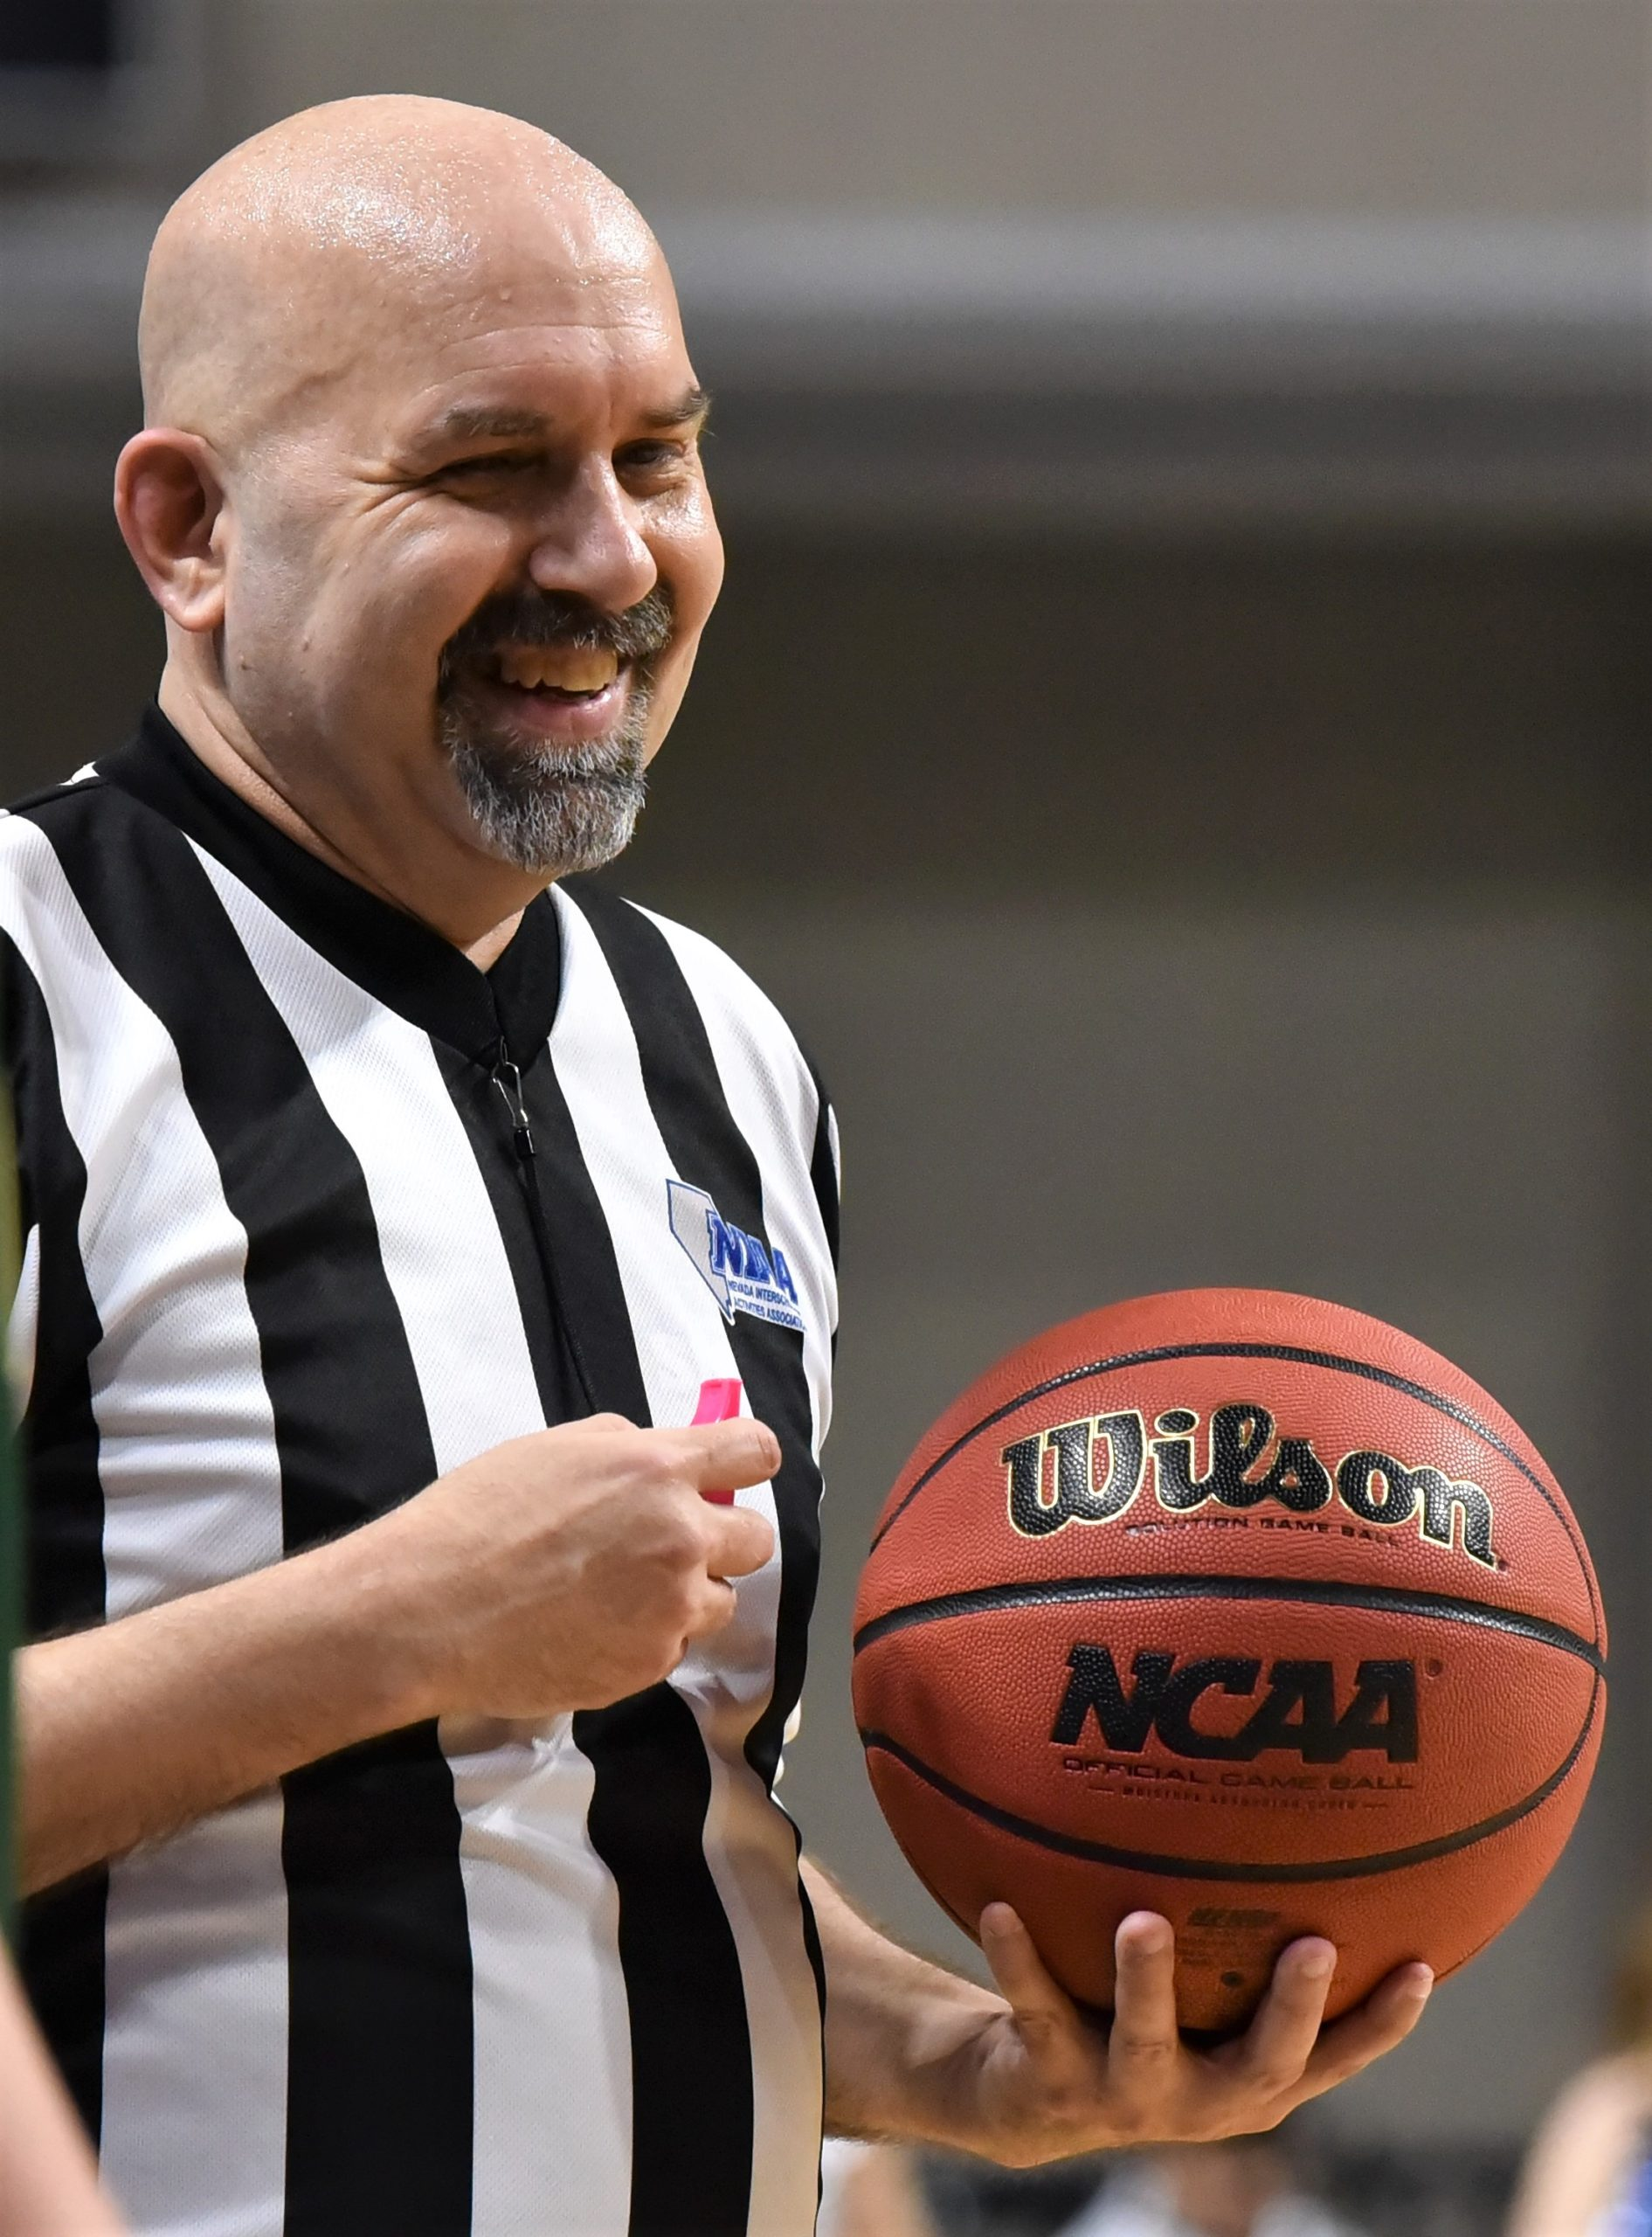 An SNOA Basketball Referee officiates a game at the South Point Arena.